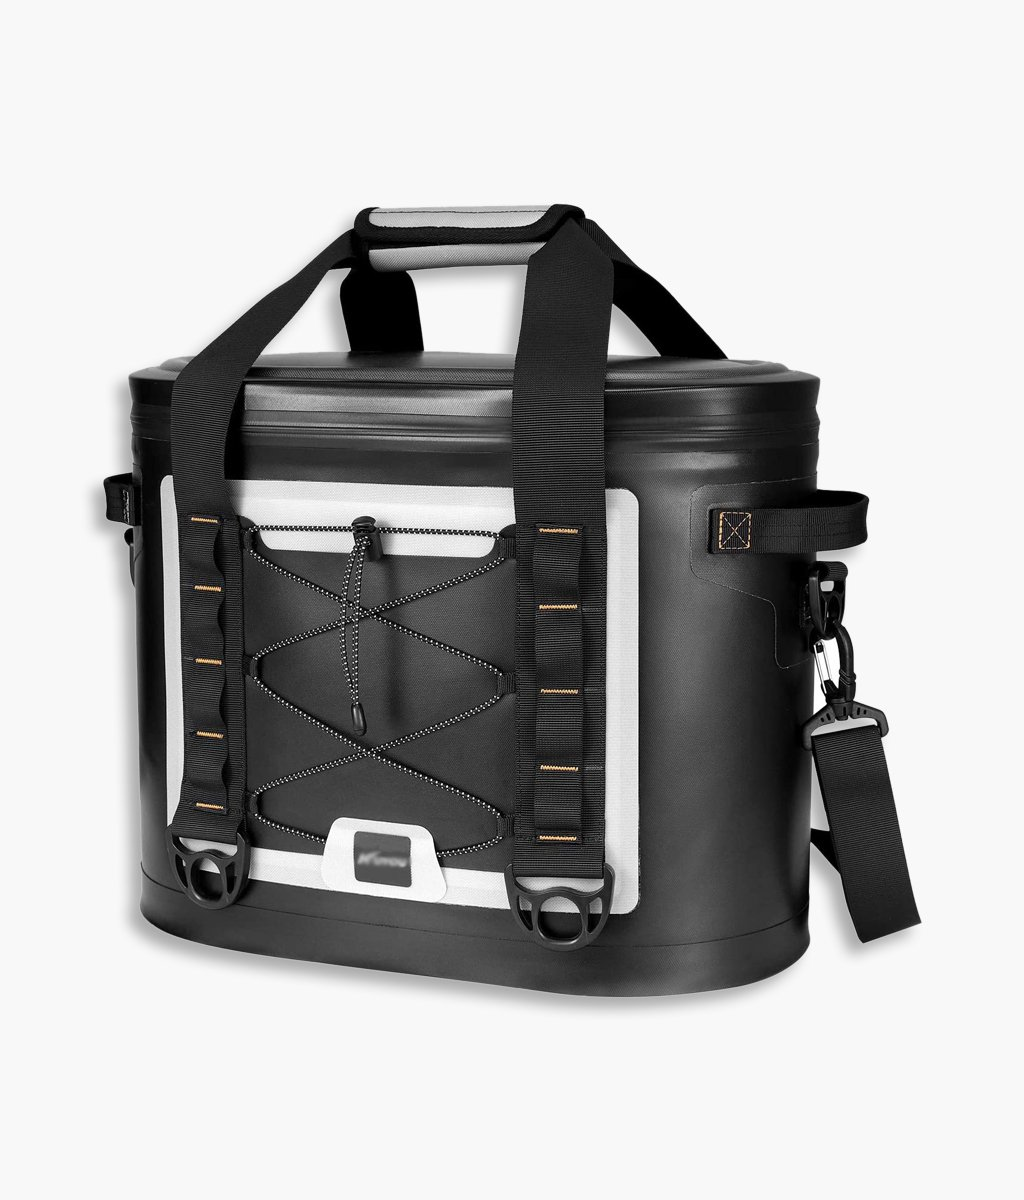 Cooler Bag Leak-proof Insulated 30 Cans